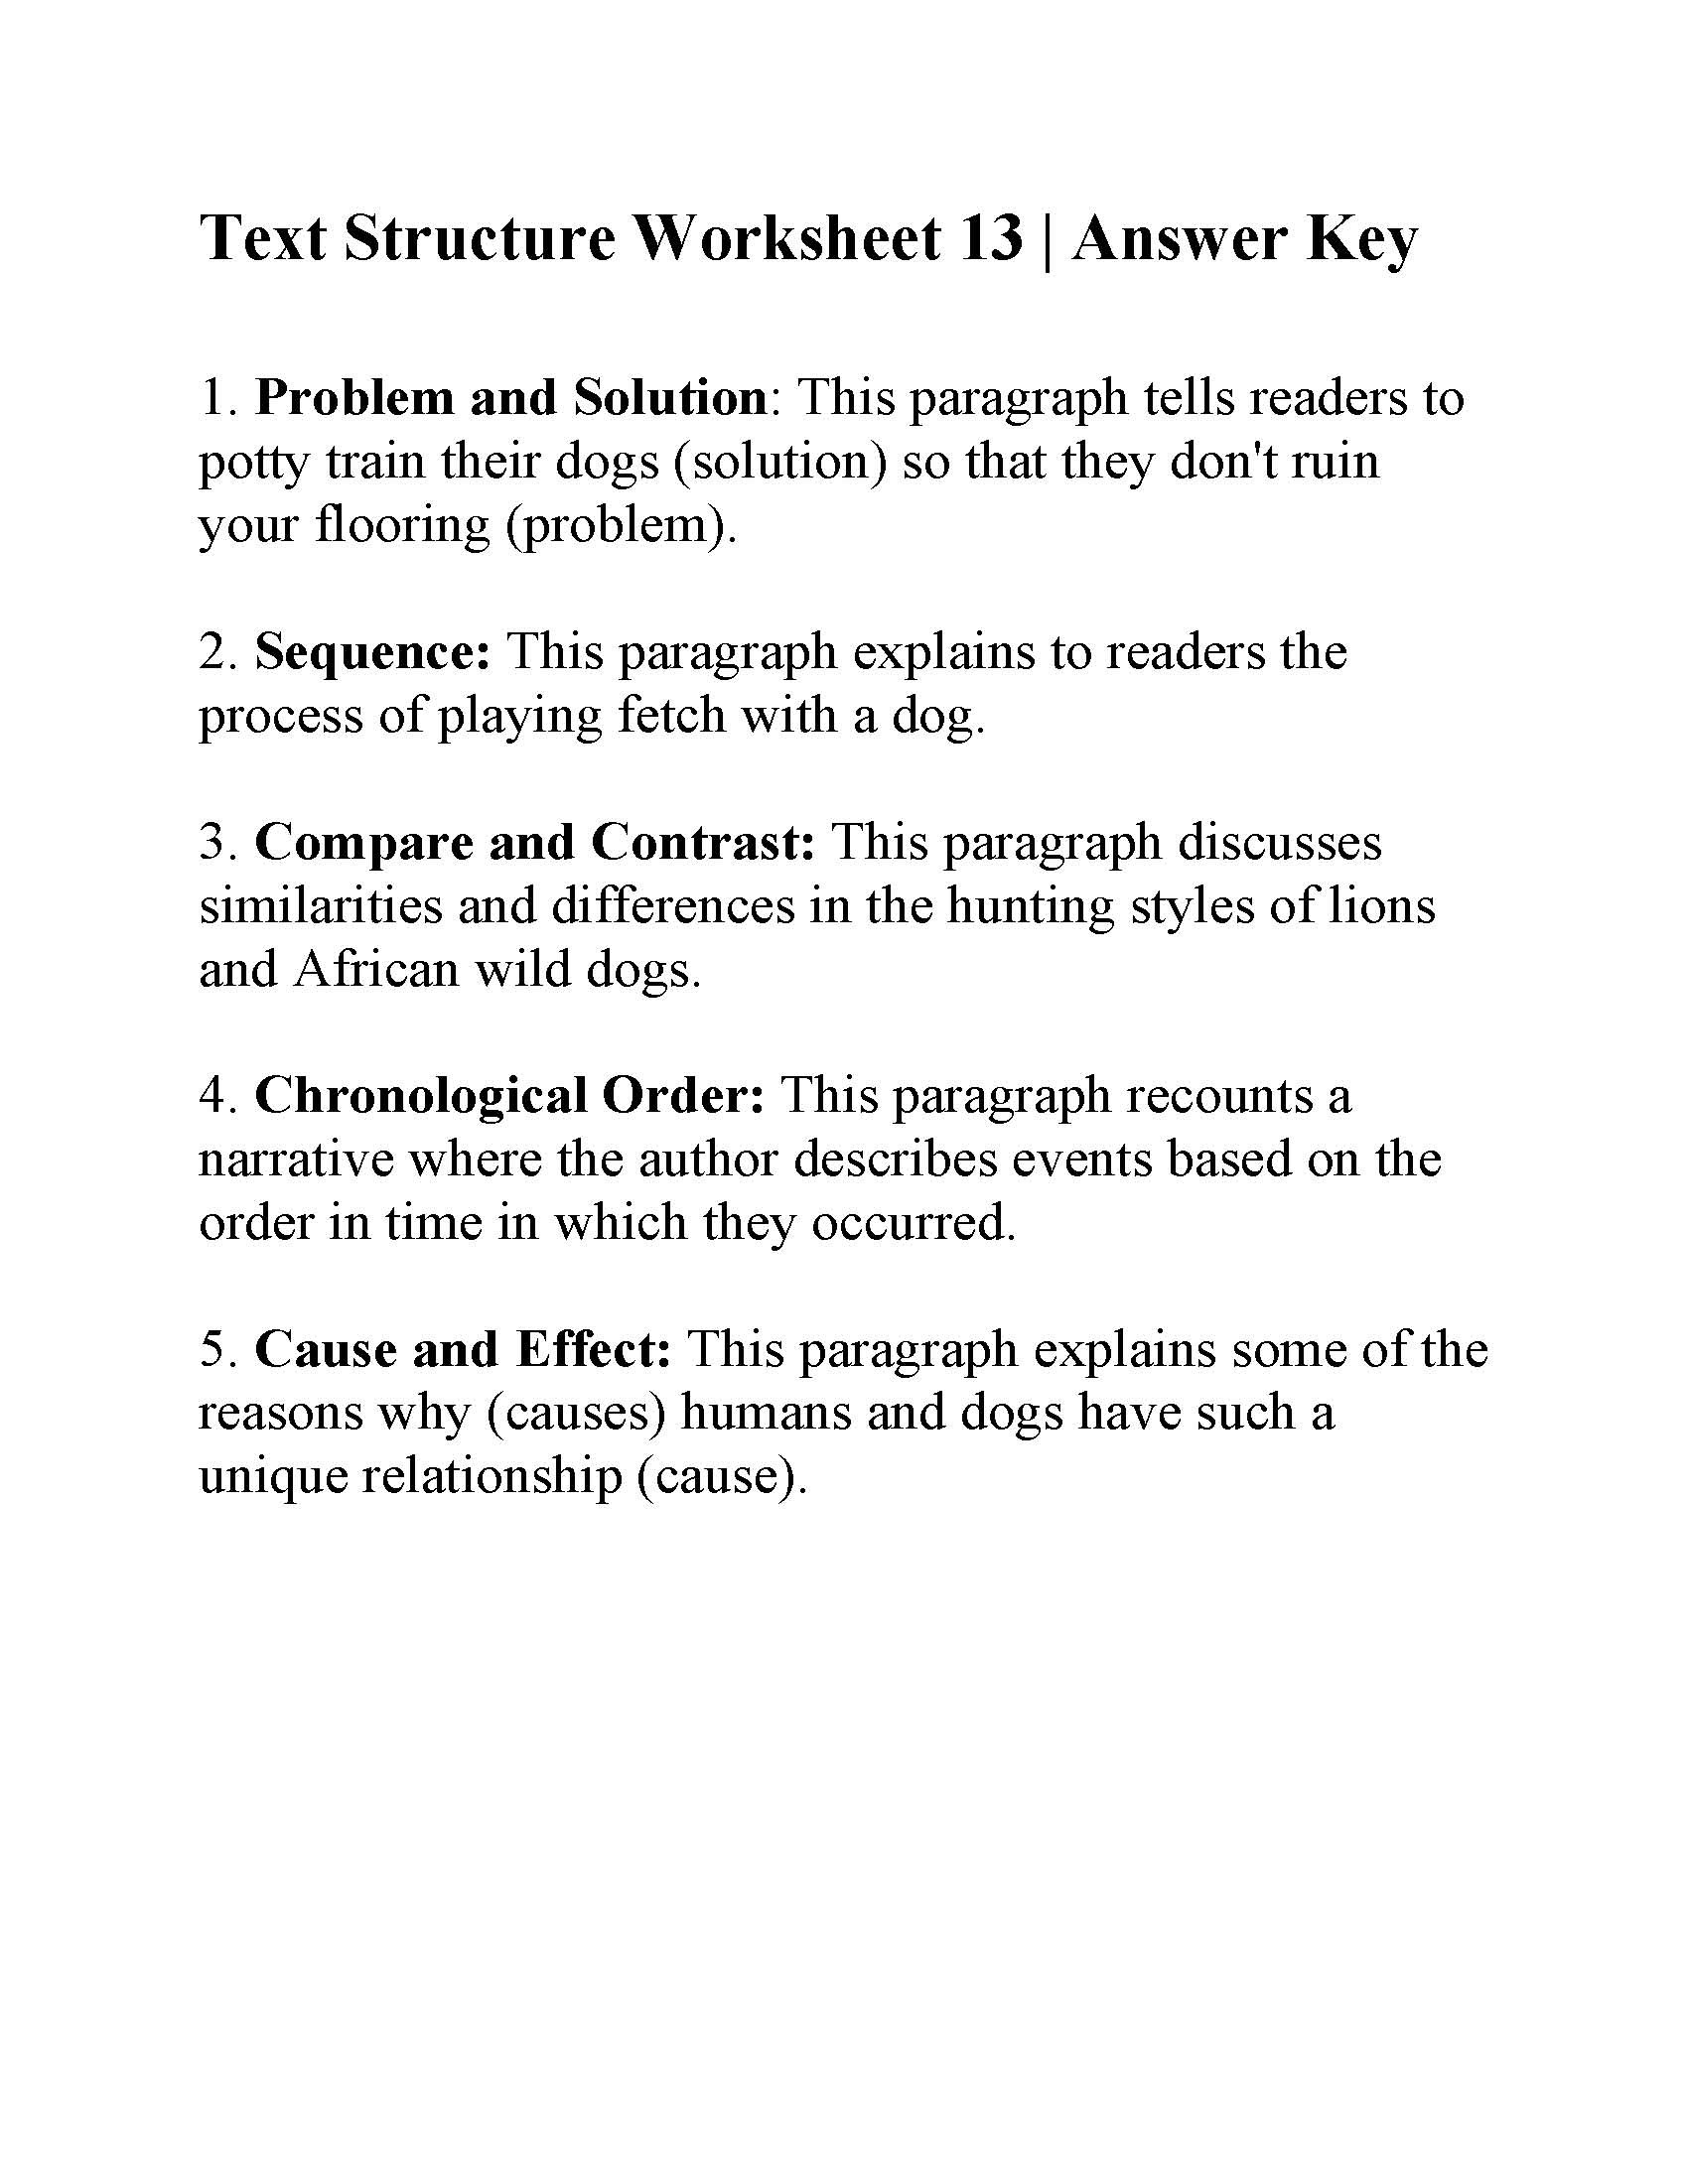 Text Structure 3rd Grade Worksheets Text Structure Worksheet Answers Ereading Worksheets Kumon